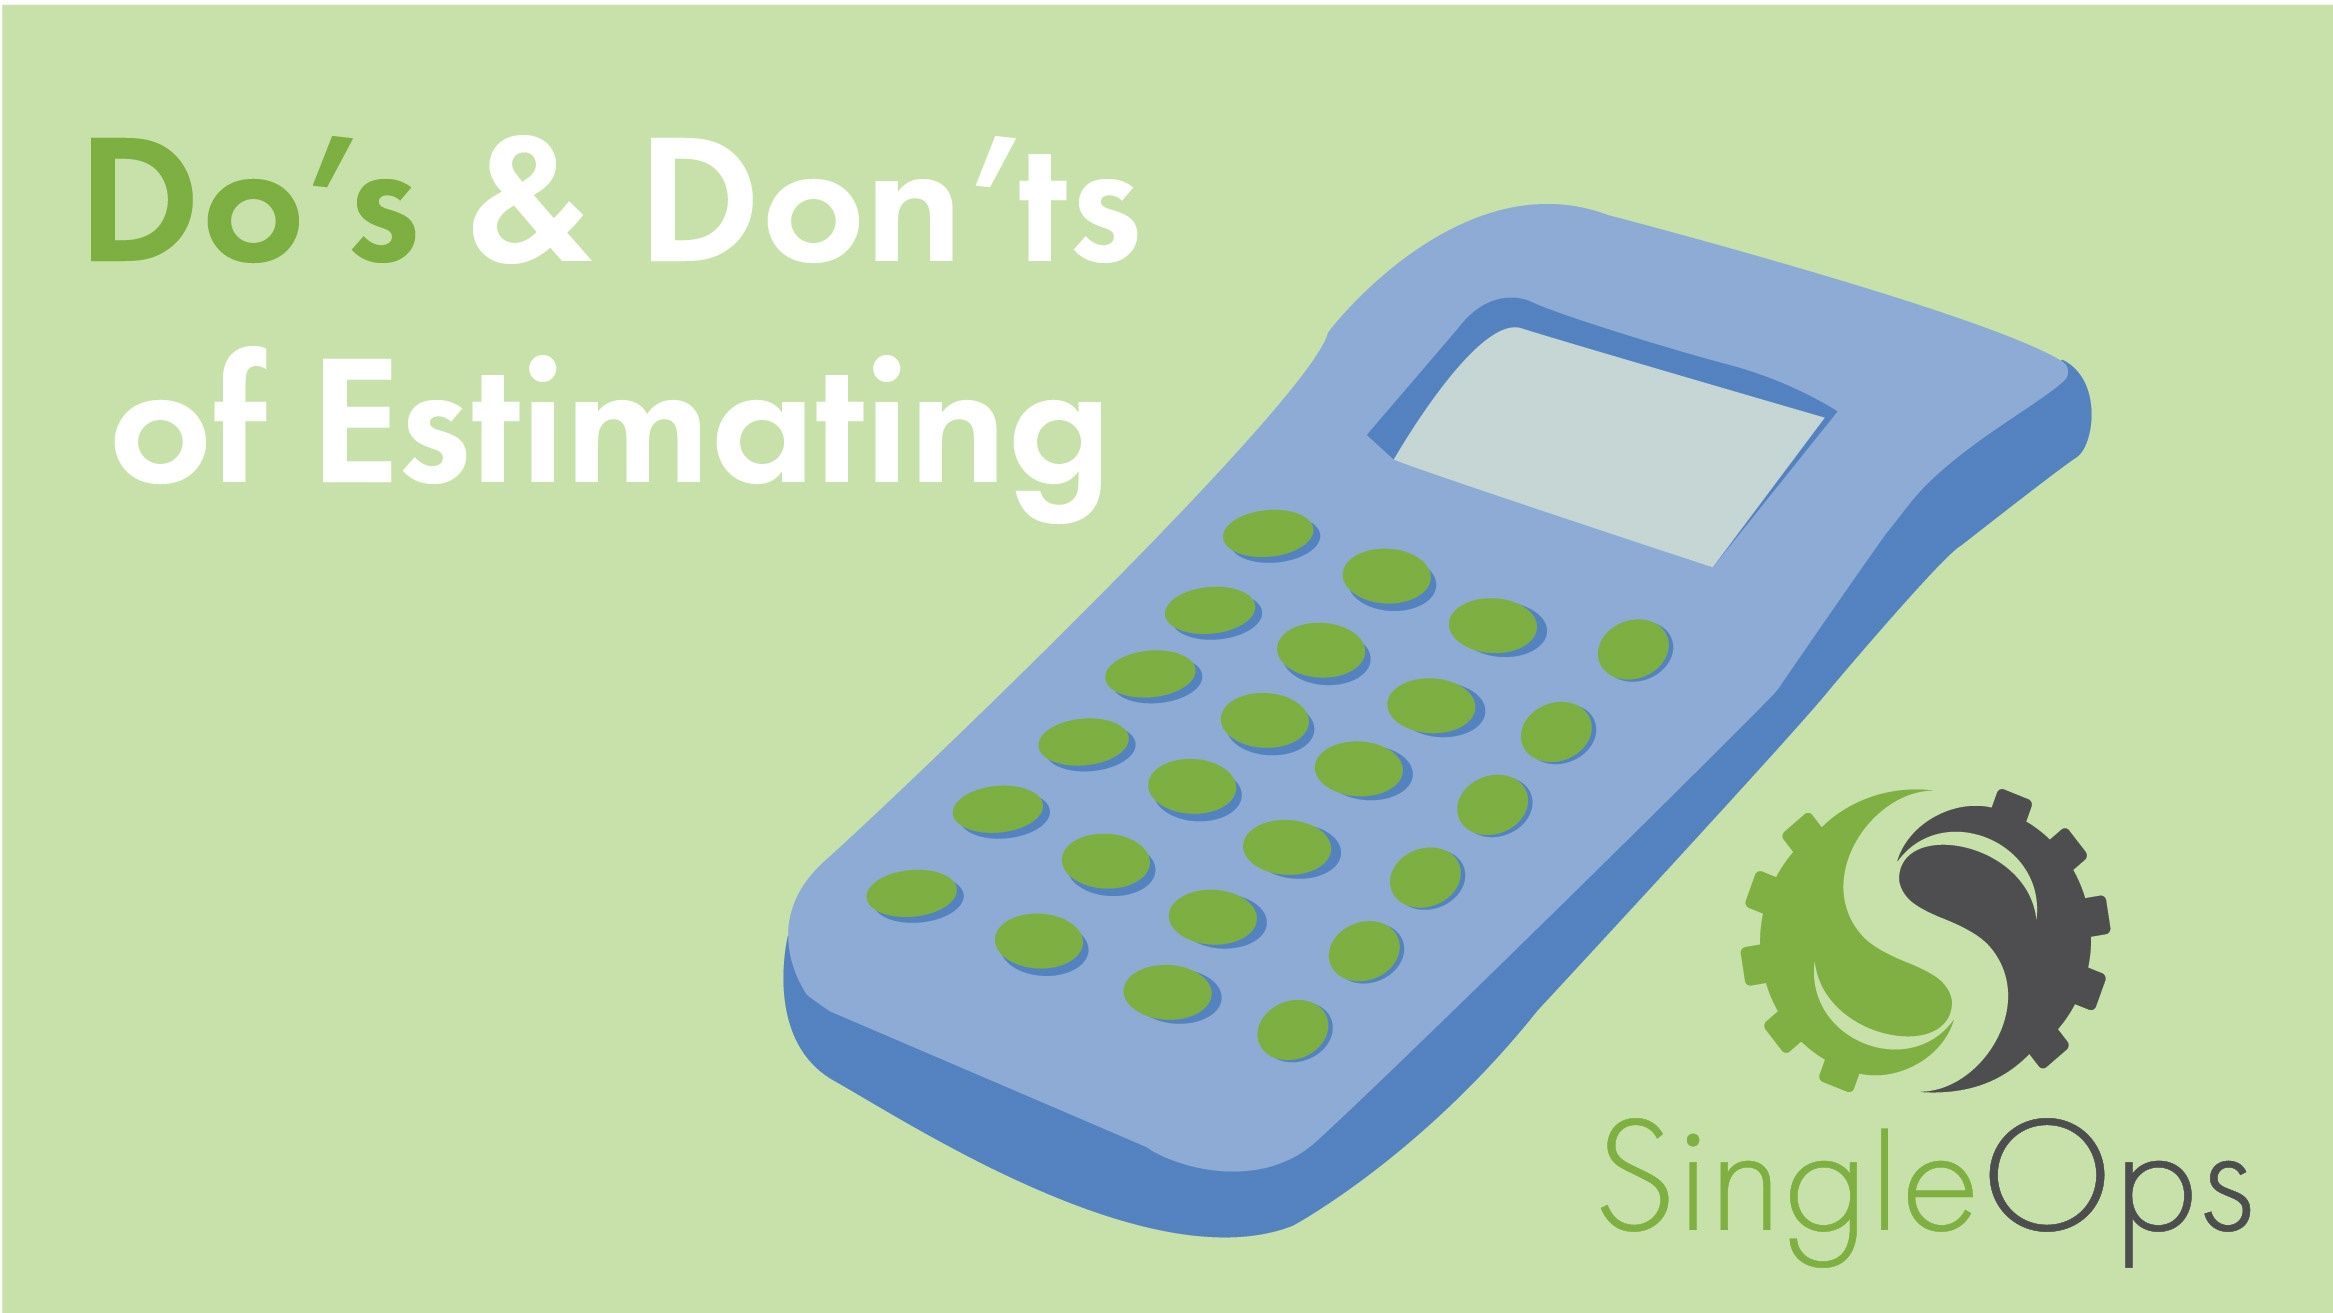 Do's and Dont's of estimating-01